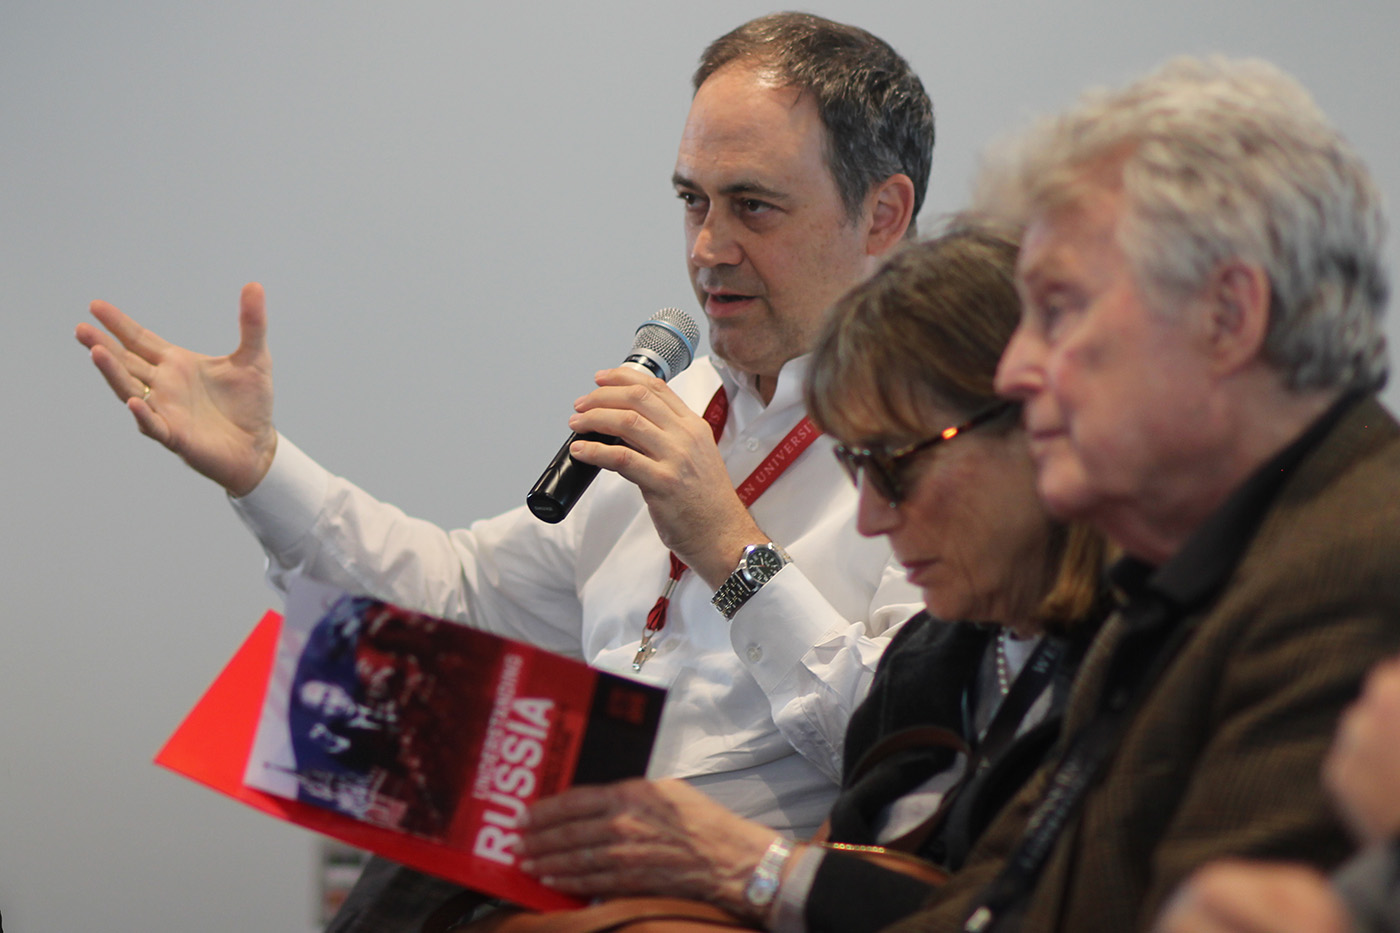 David Abramson '87, Foreign Affairs Analyst at the U.S. Department of State, asks a question at a panel held by Wesleyan alumni on Saturday afternoon regarding Russia's economic development, the prospects for foreign investors, and the range of careers available to graduates in Russian studies.